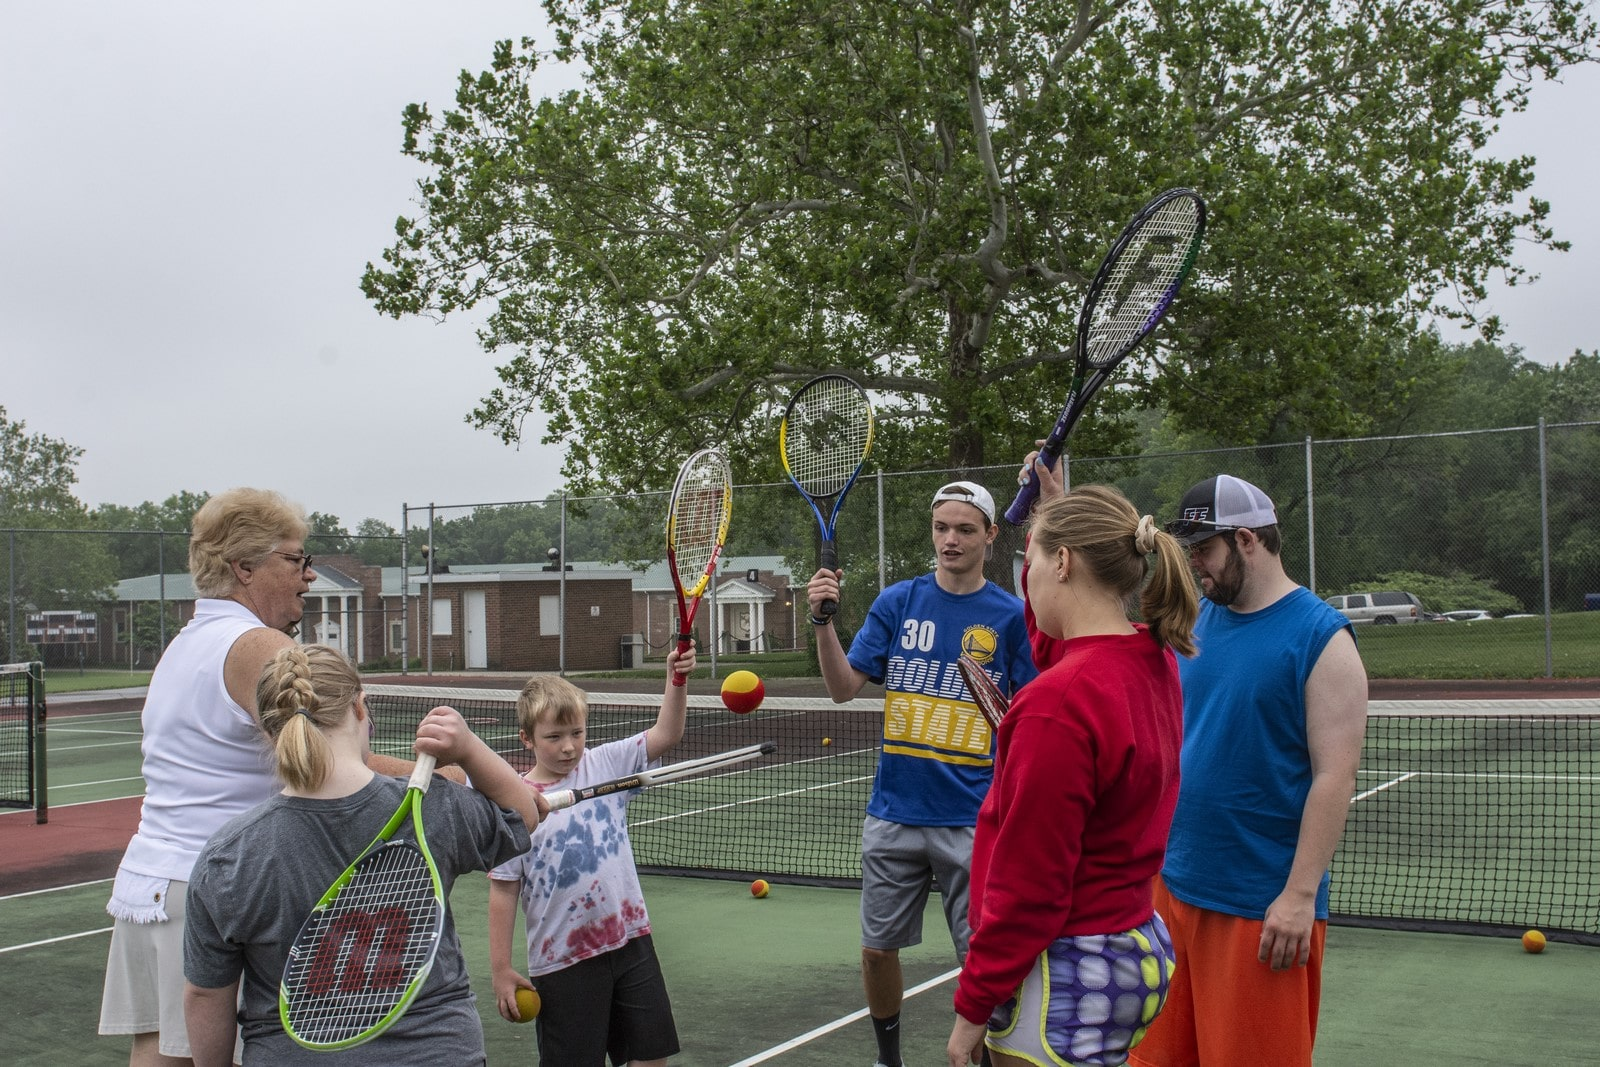 A group of athletes raise their tennis rackets into the air